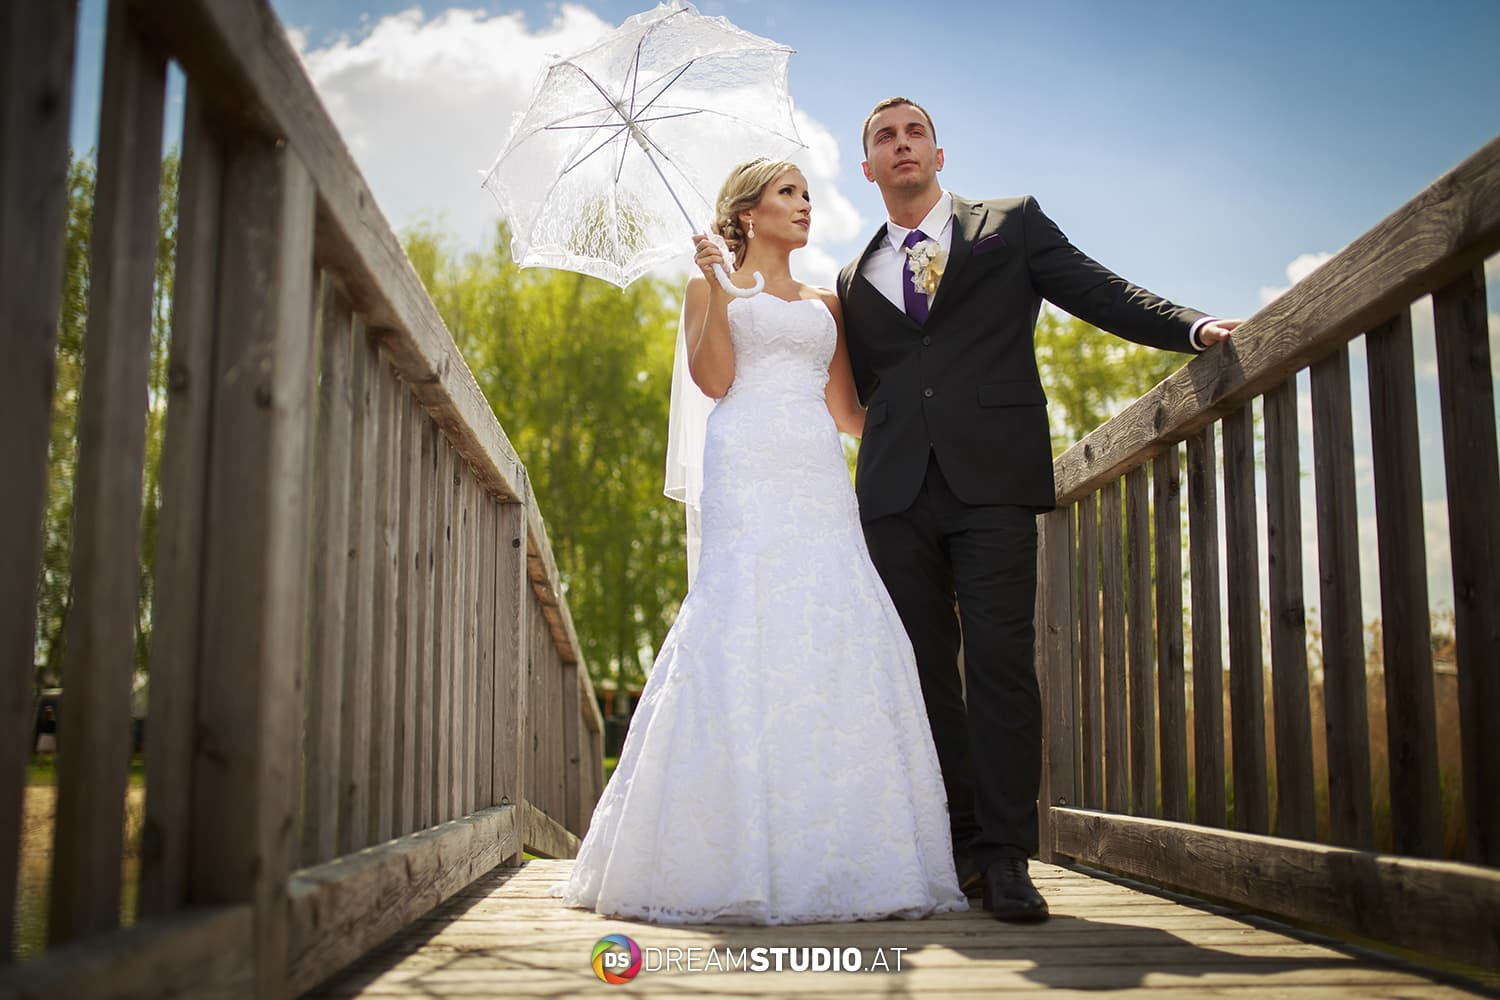 dream-studio-wedding-photography-3-min-1